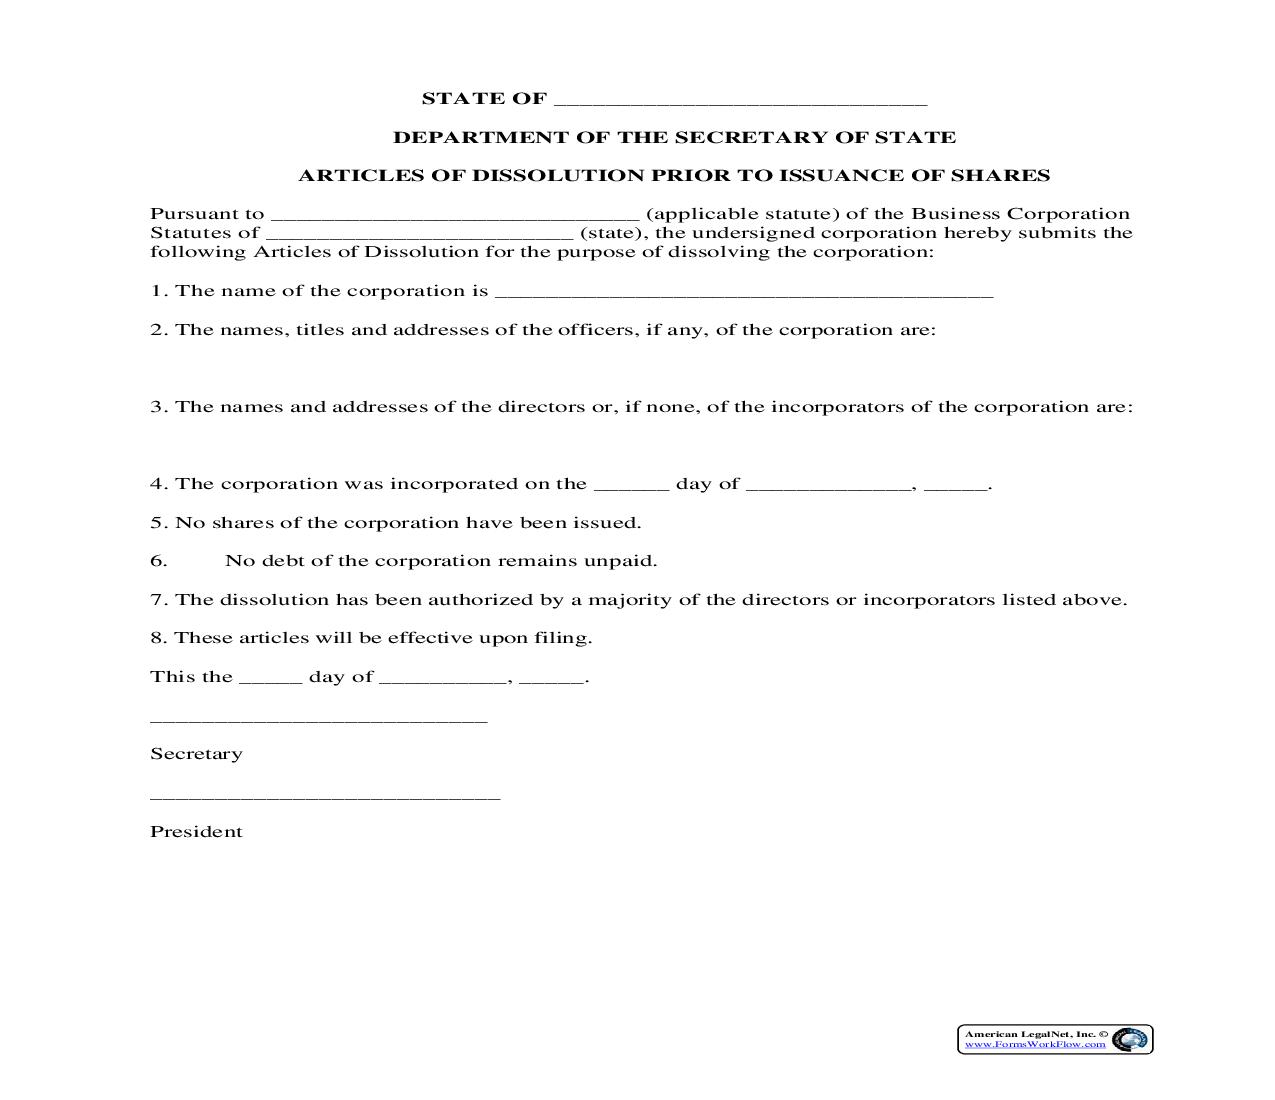 Articles Of Dissolution Prior To Issuance Of Shares | Pdf Fpdf Docx | Legal Forms